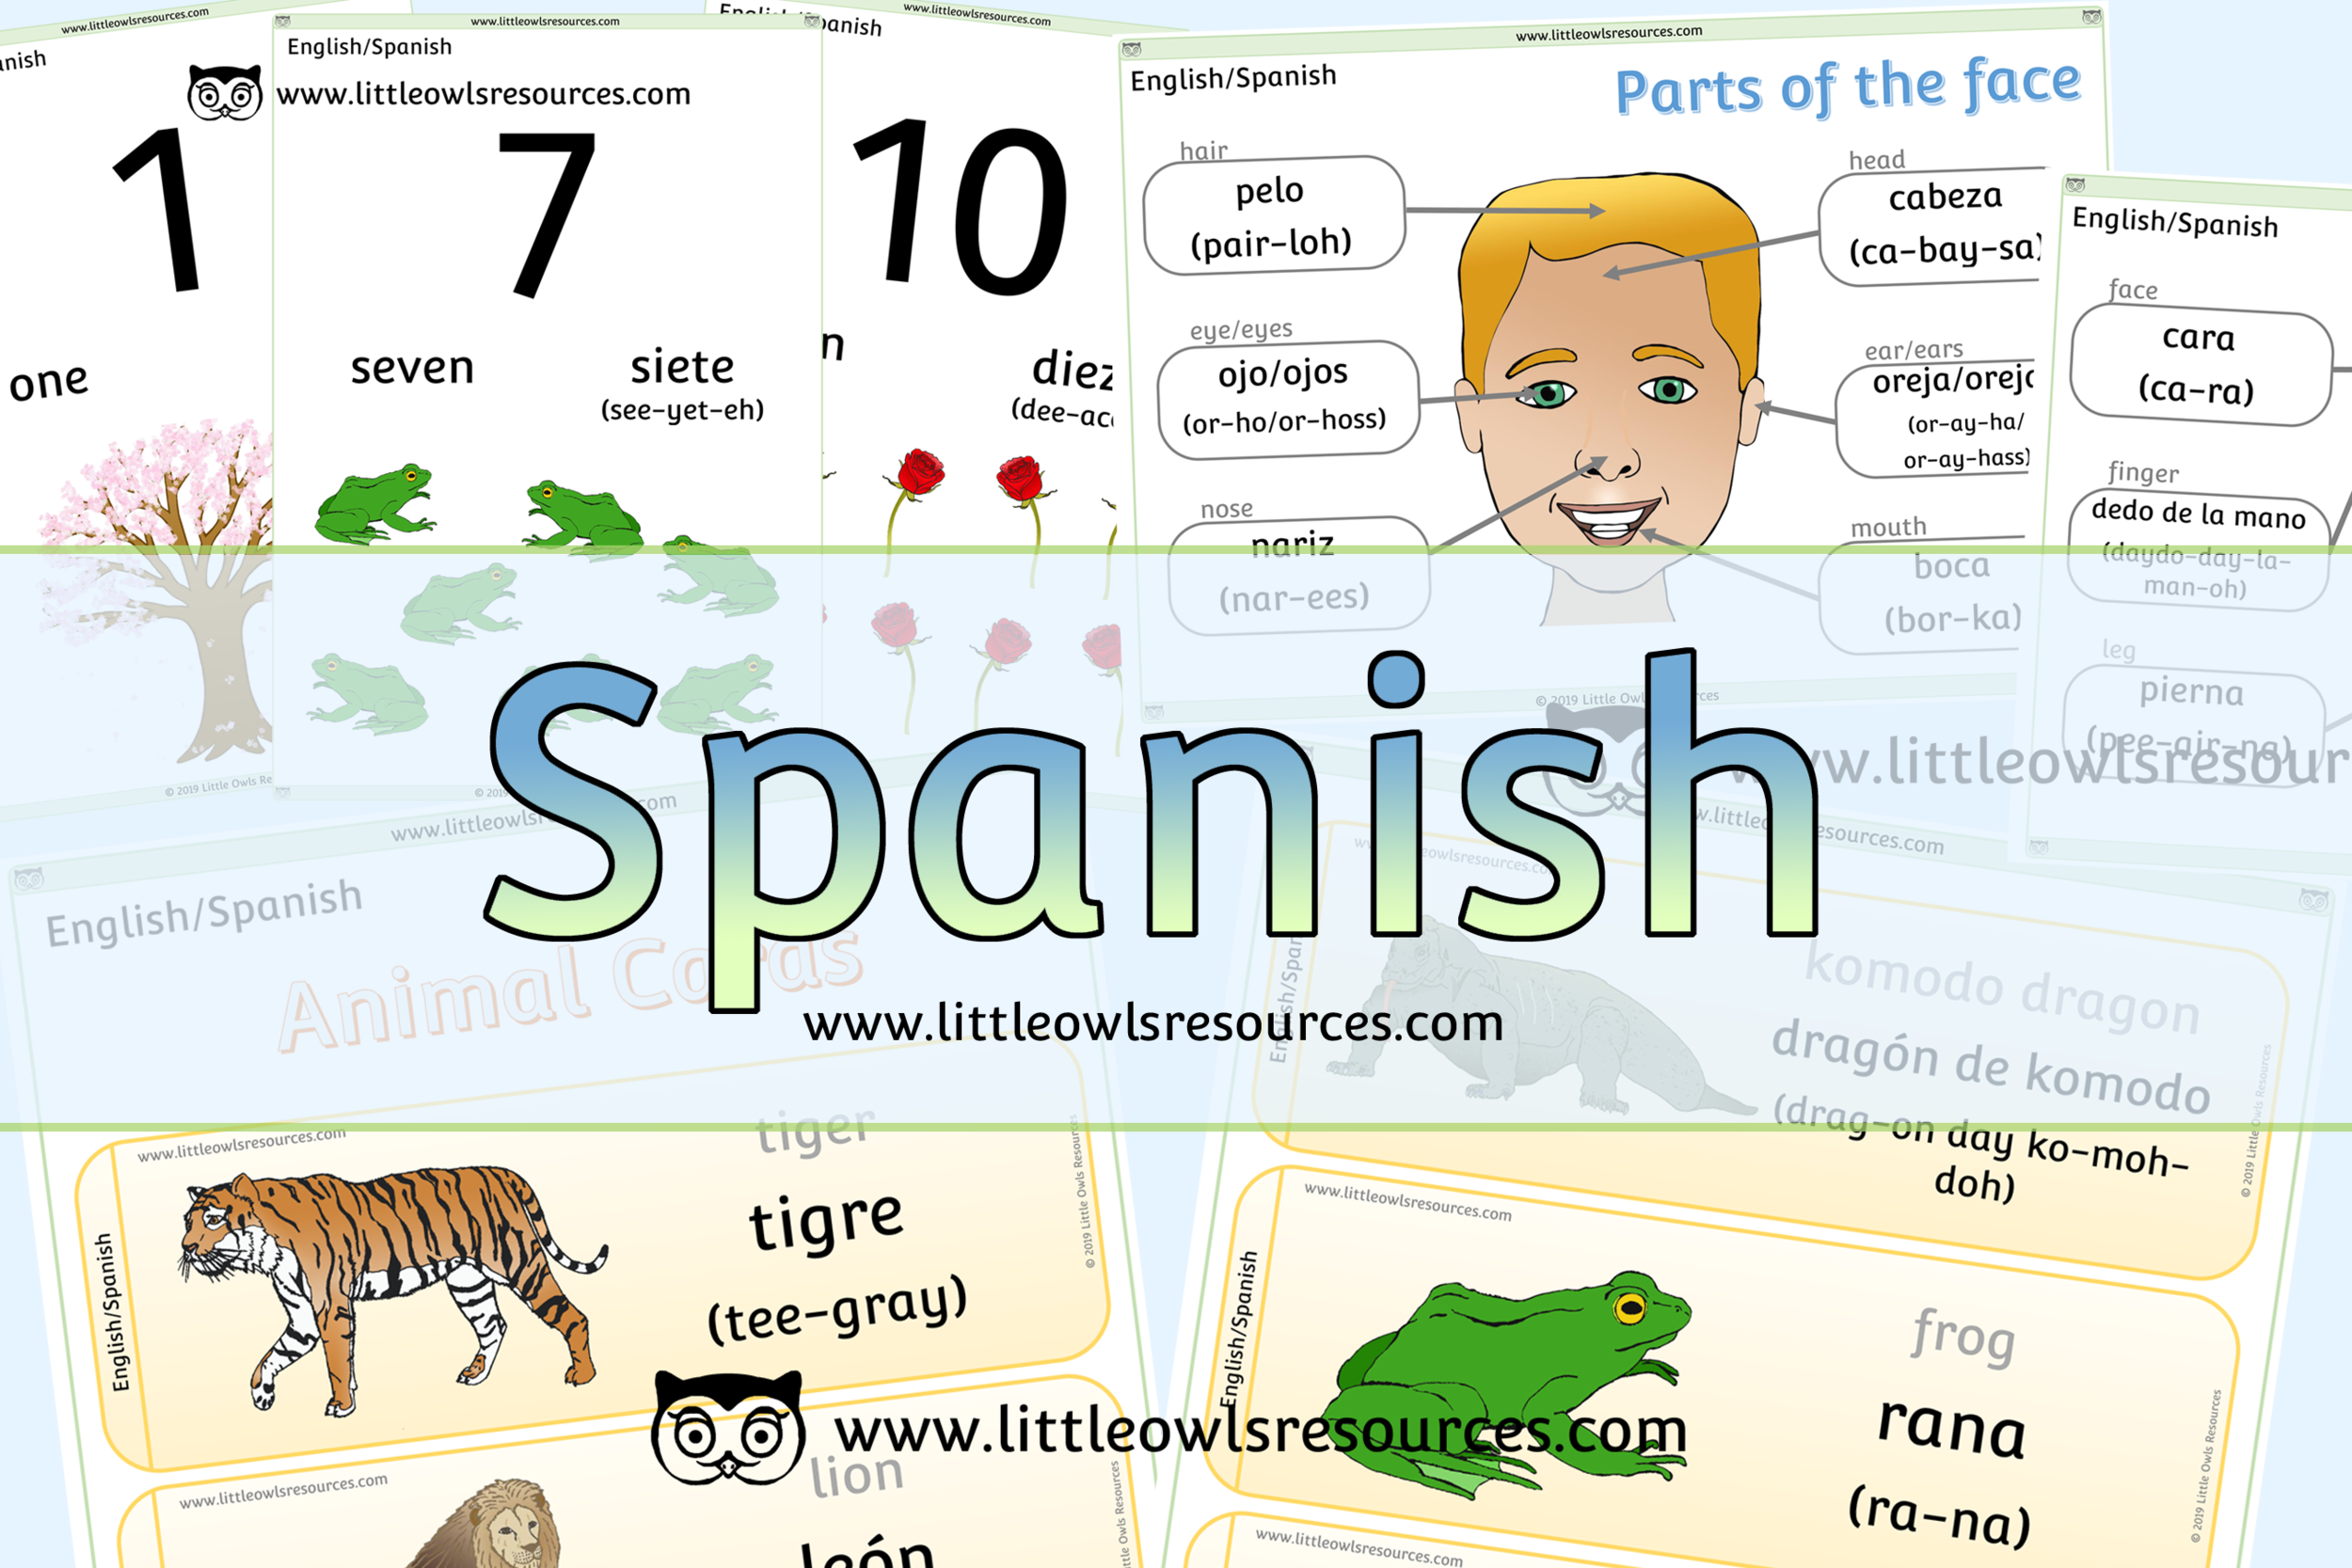 Spanish/English Dual Language Resources